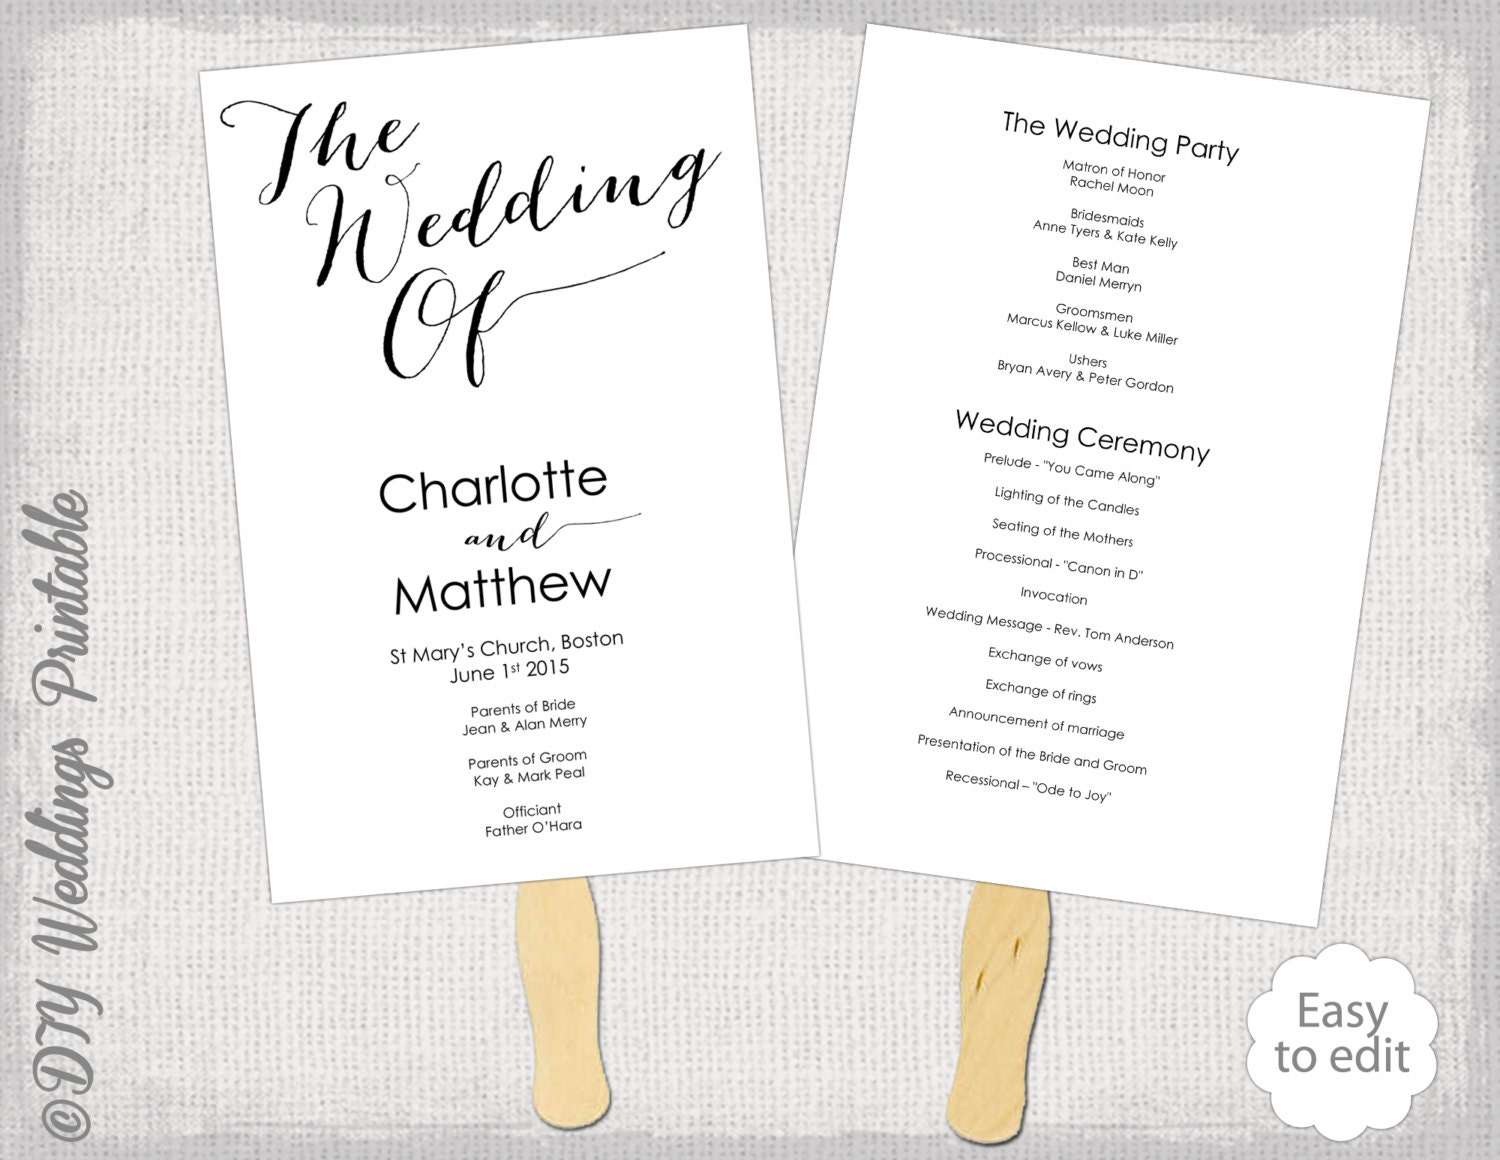 Wedding Program Ceremony Template Aprilonthemarchco - Easy wedding program template